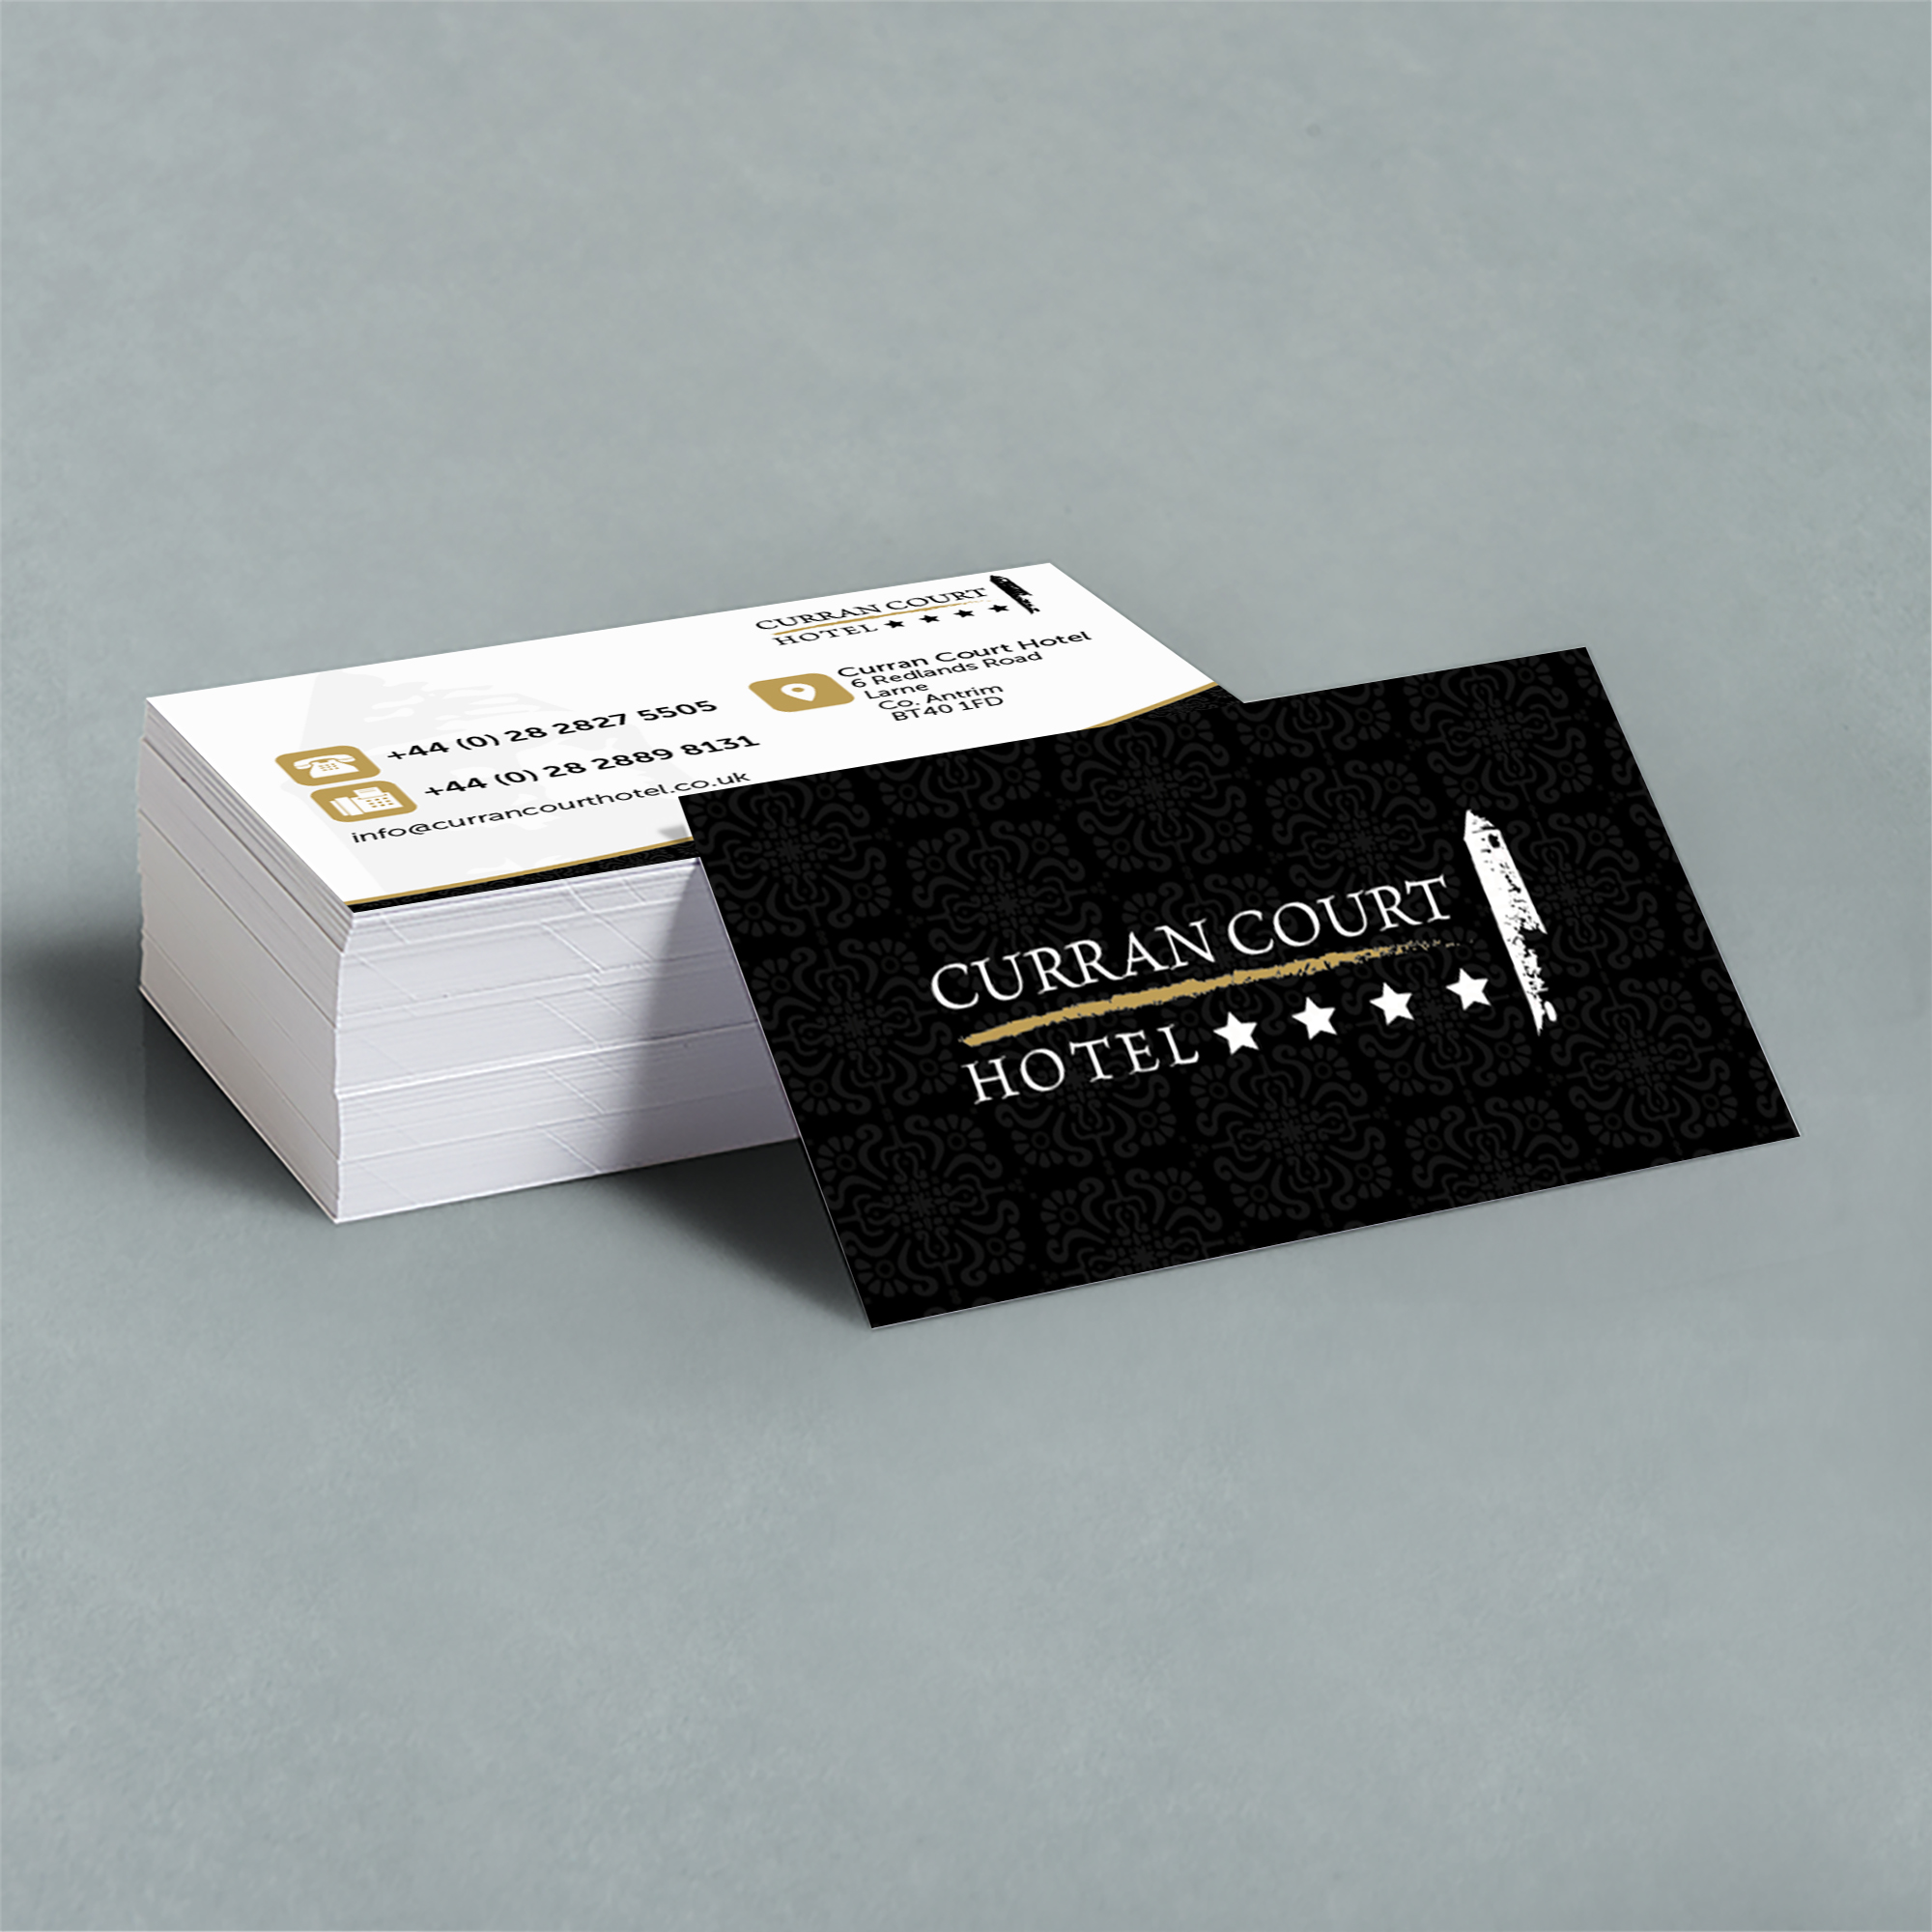 Curran court hotel 400gsm business cards stickin out creative colourmoves